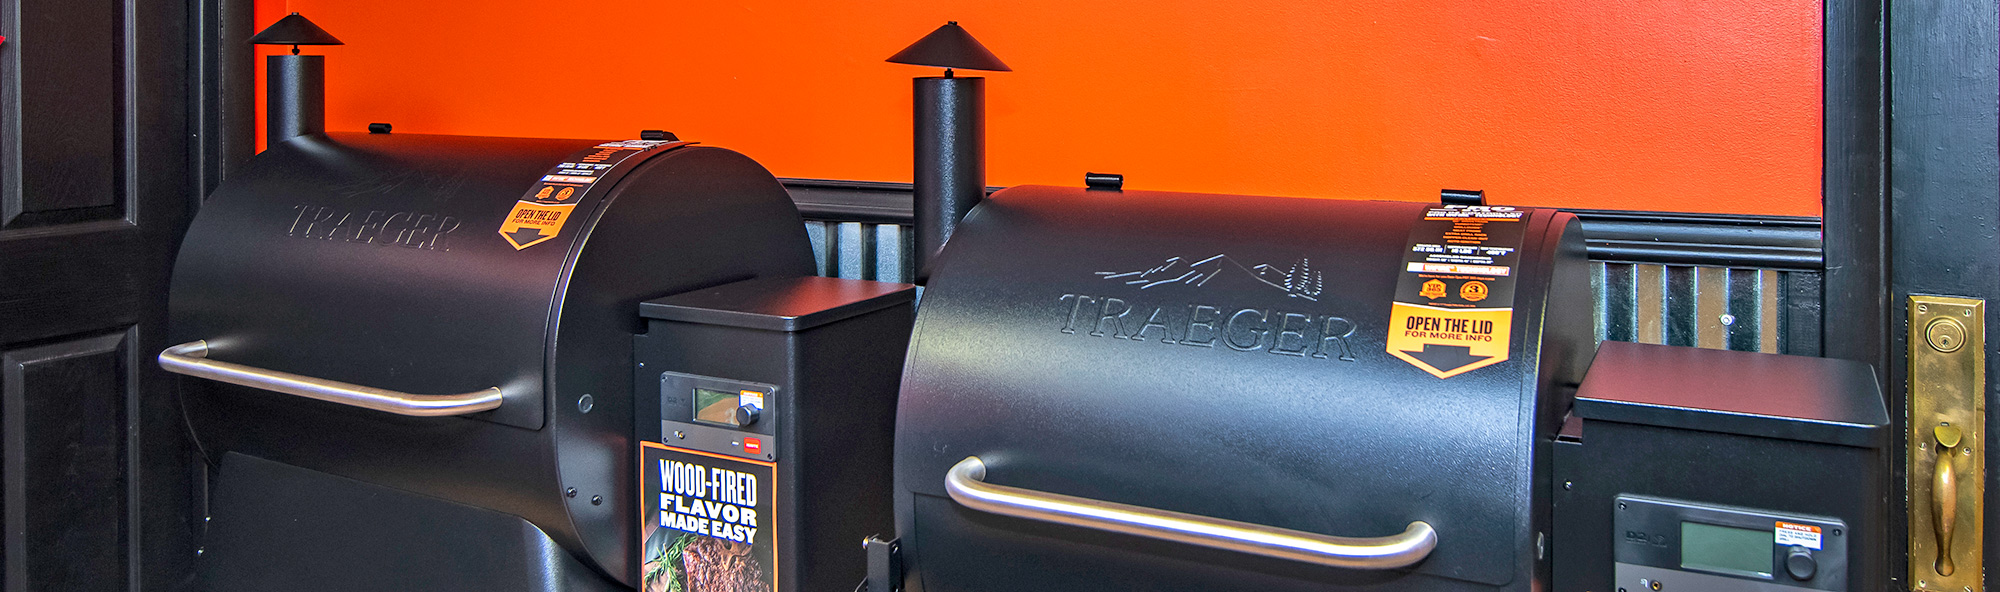 traeger grills for sale